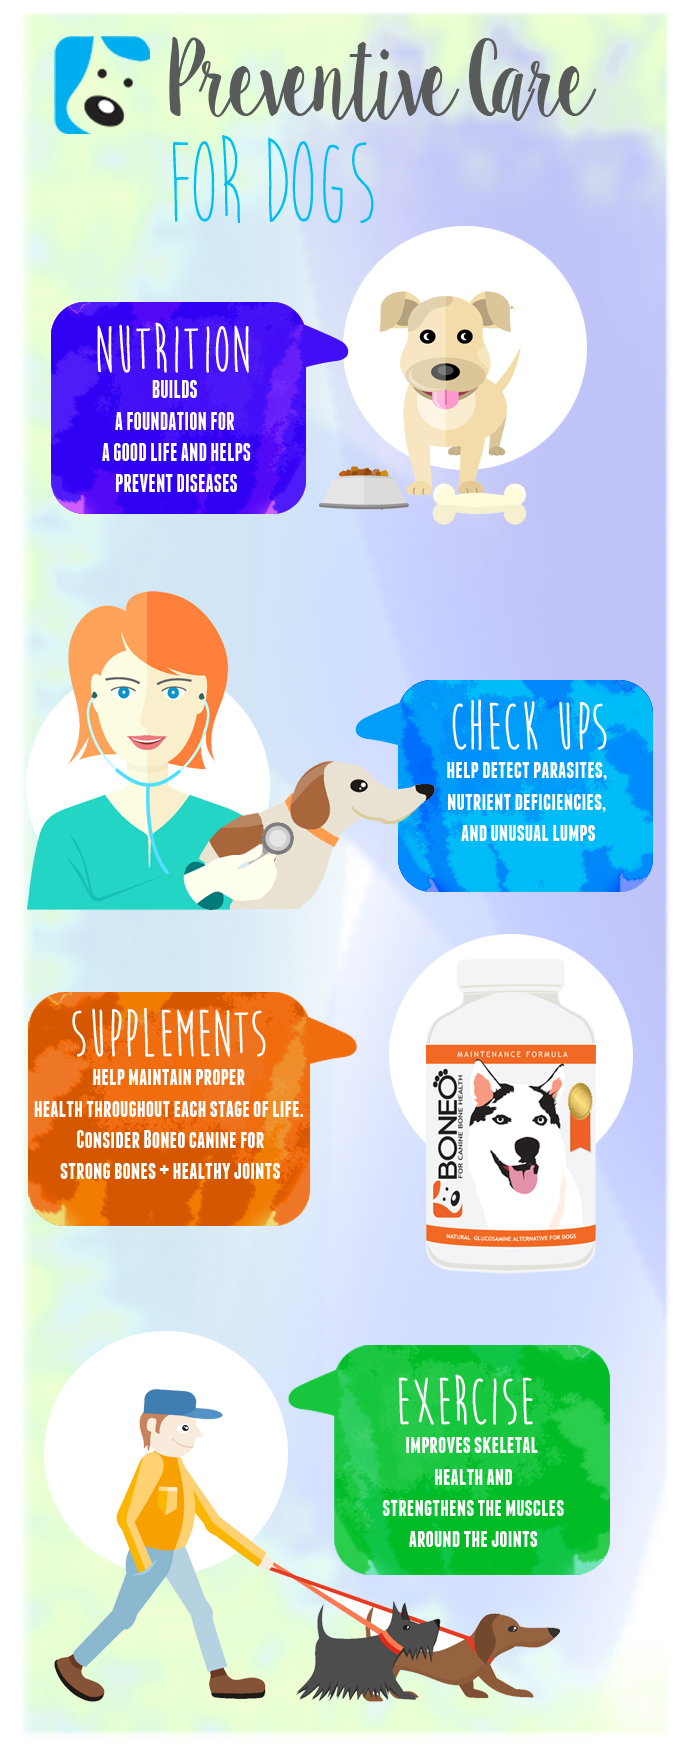 Preventive Care for Dogs